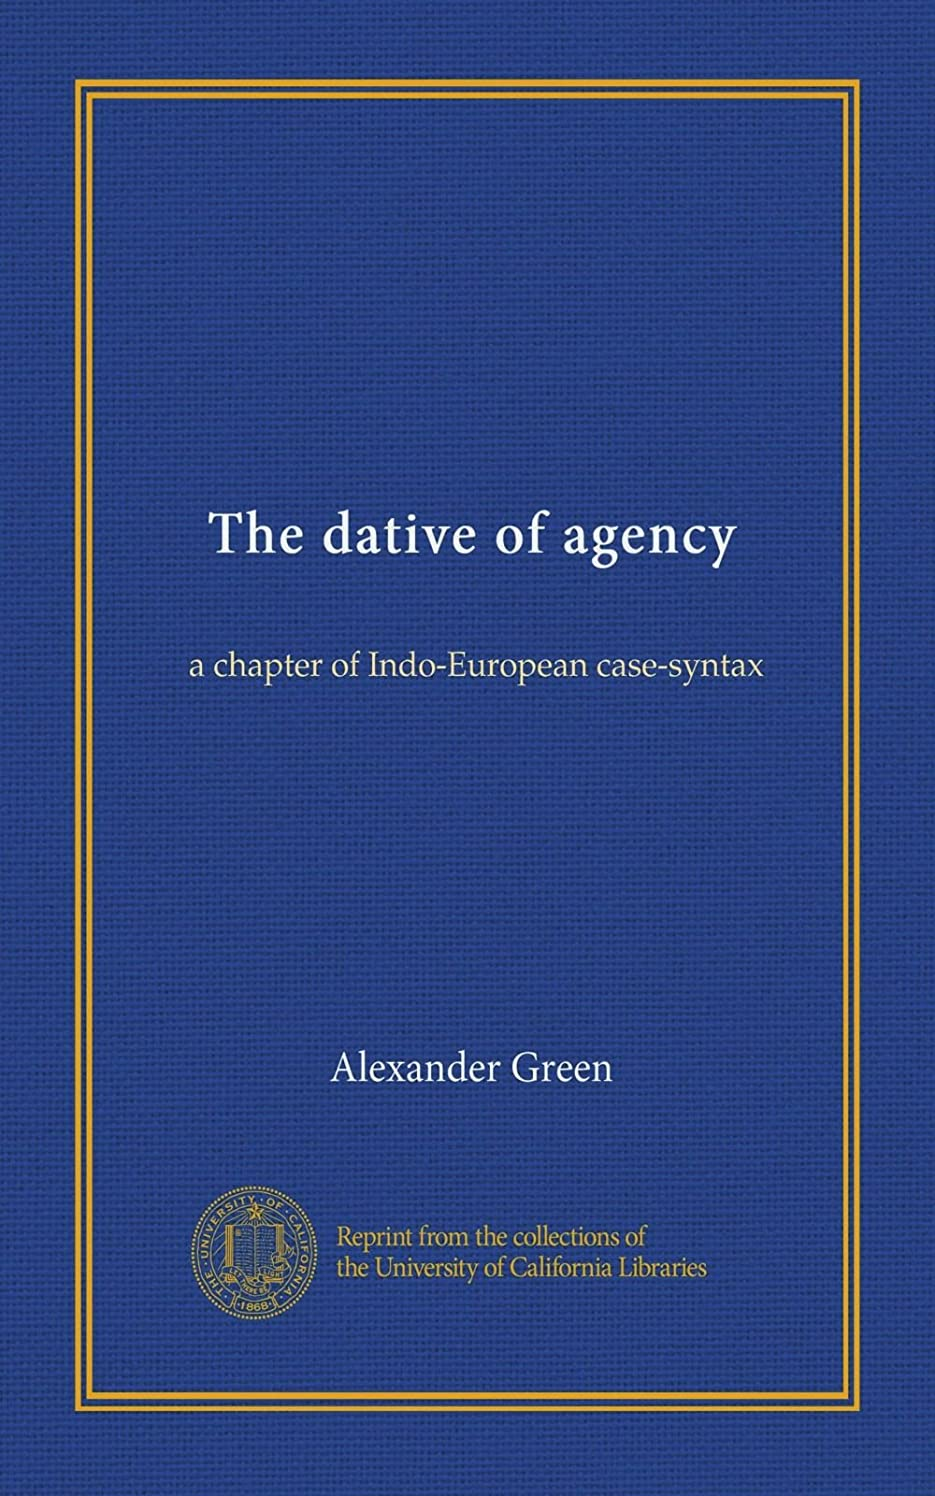 スチュワーデス乞食事実上The dative of agency: a chapter of Indo-European case-syntax